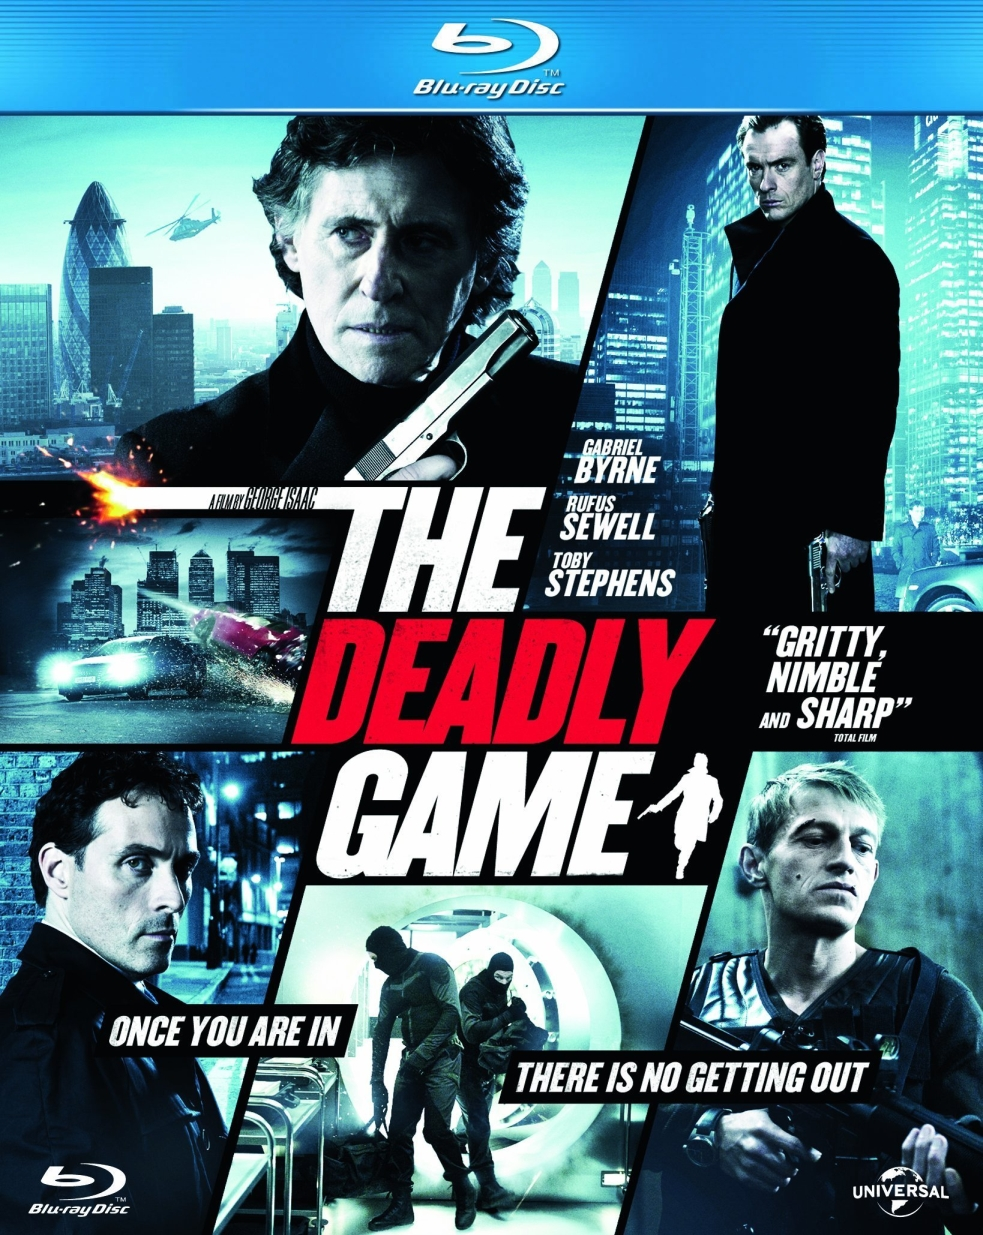 The Deadly Game (2013) .m2ts Full BluRay DTS-HD MA ENG DTS ITA